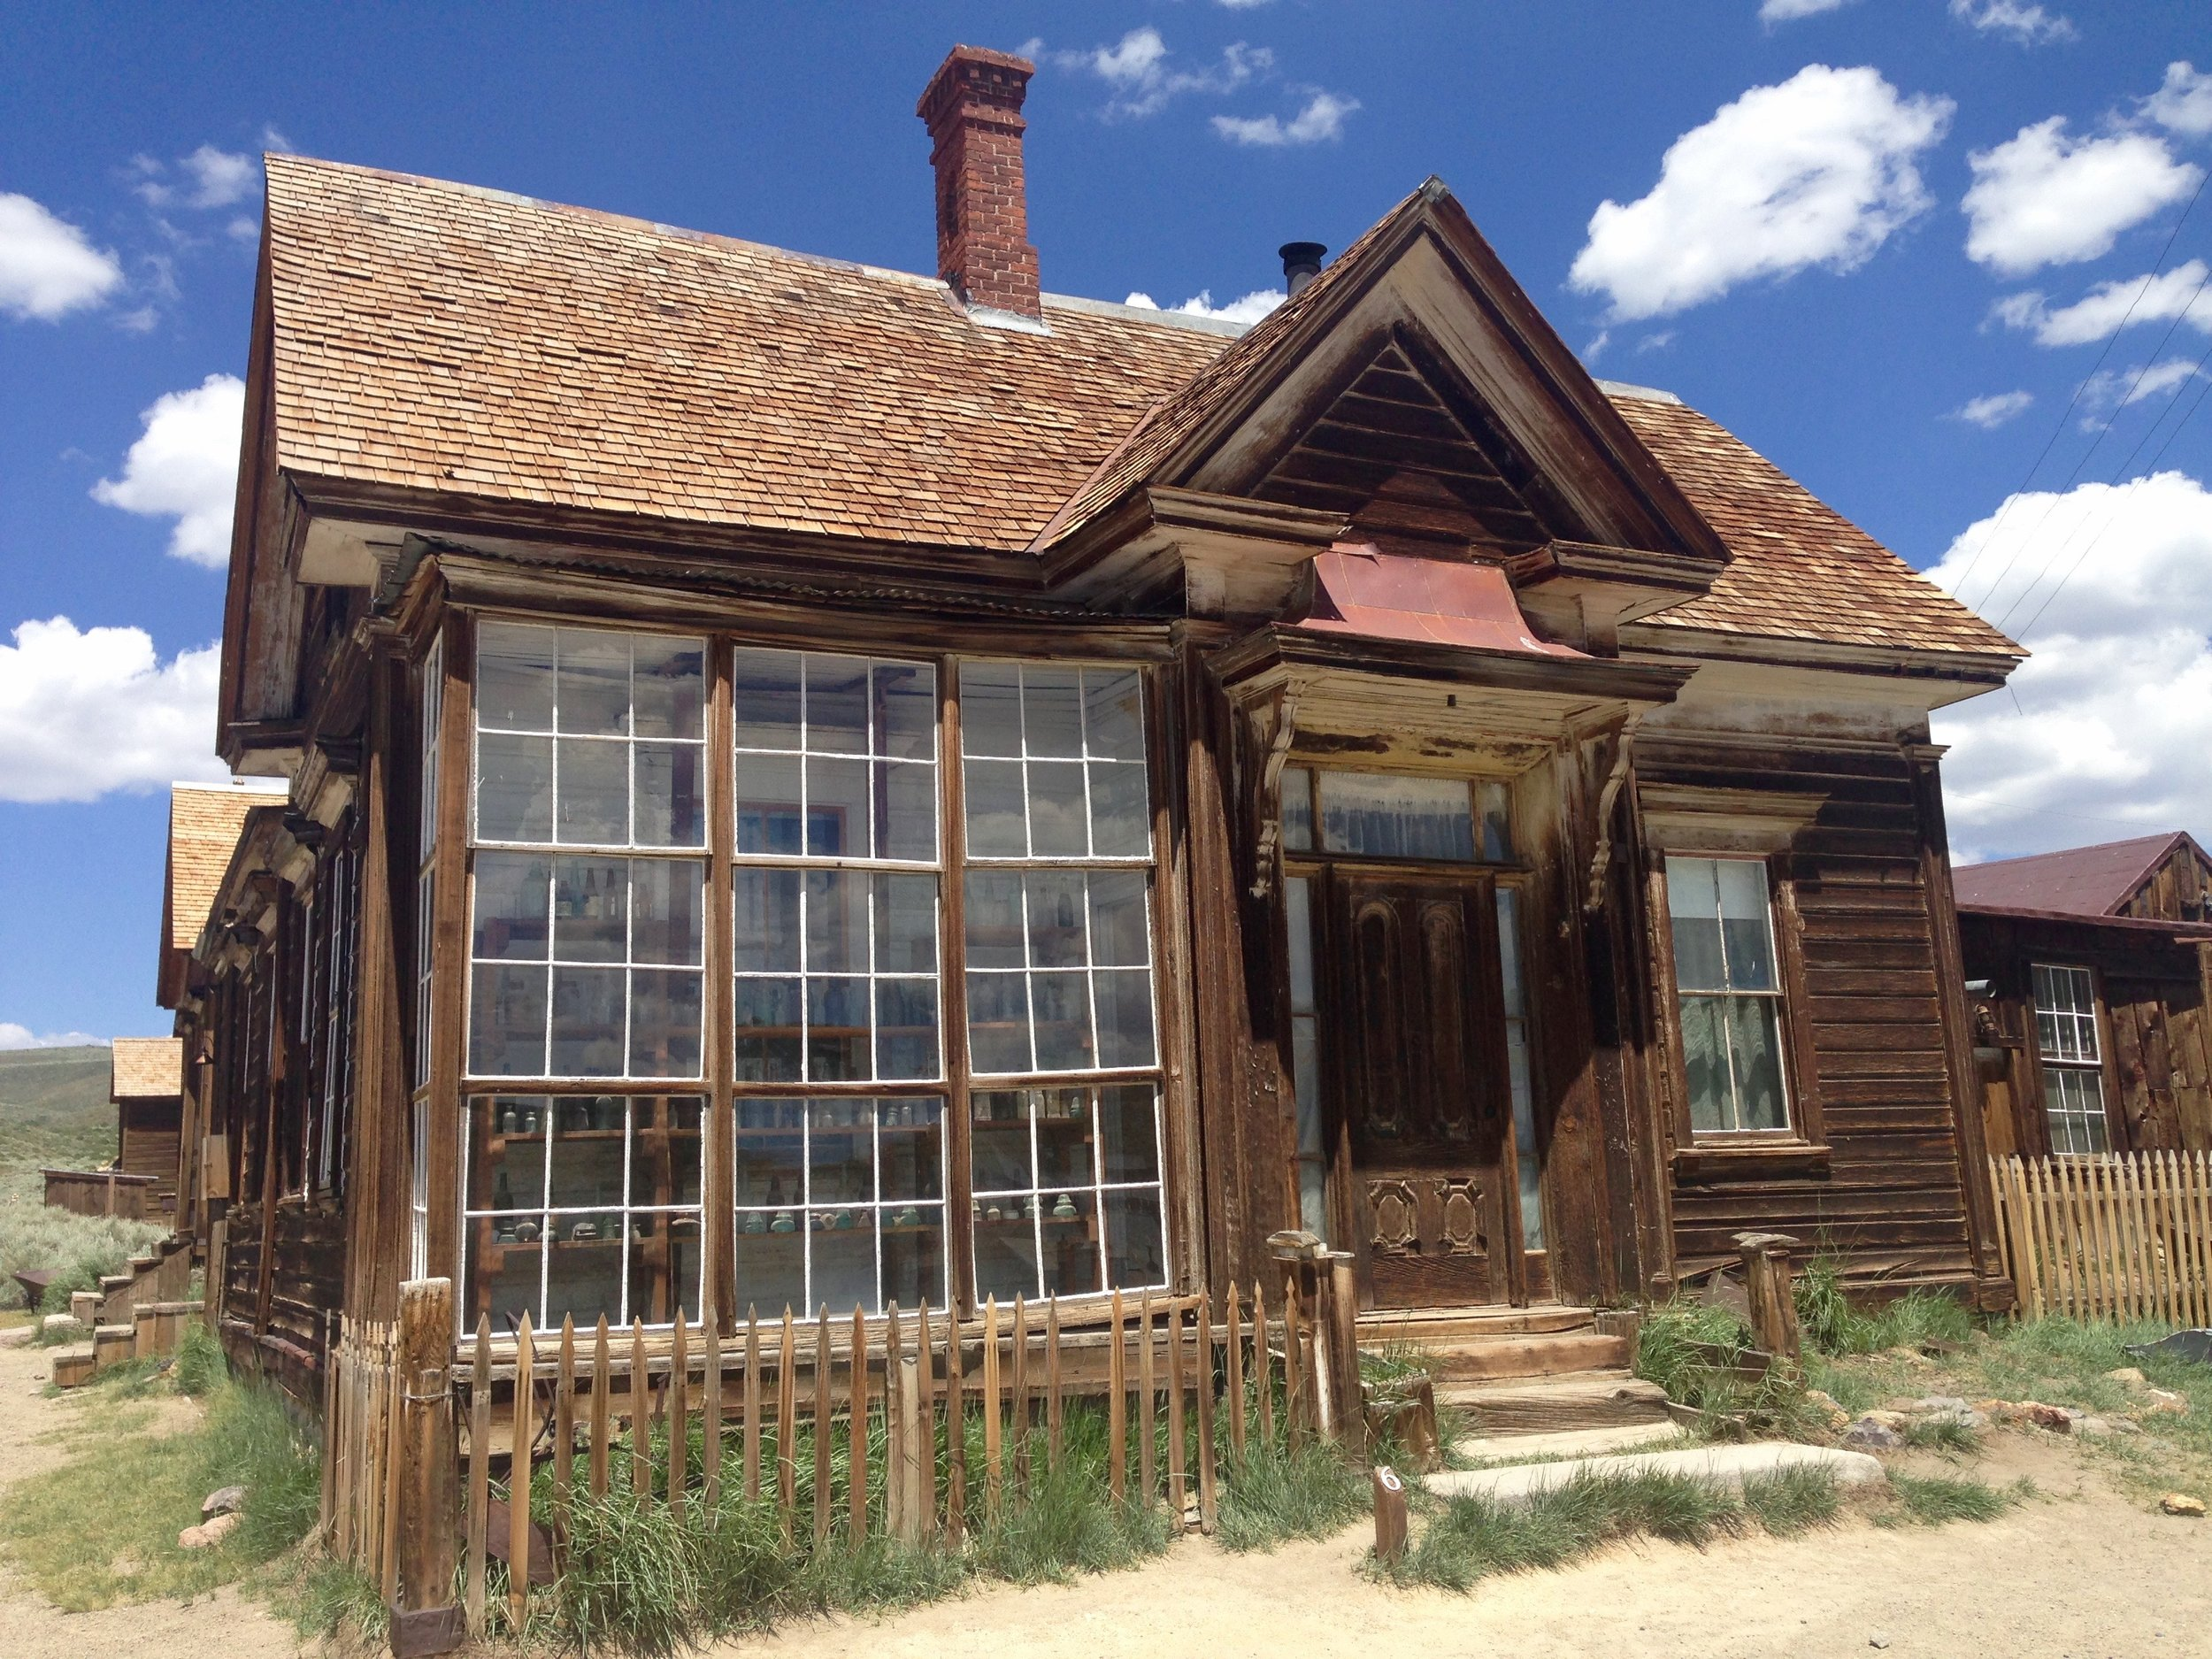 James Stuart Cain Residence - Cain made his fortune with lumber. He bought the Bodie Bank in 1890 and the Standard Company mining properties in 1915.